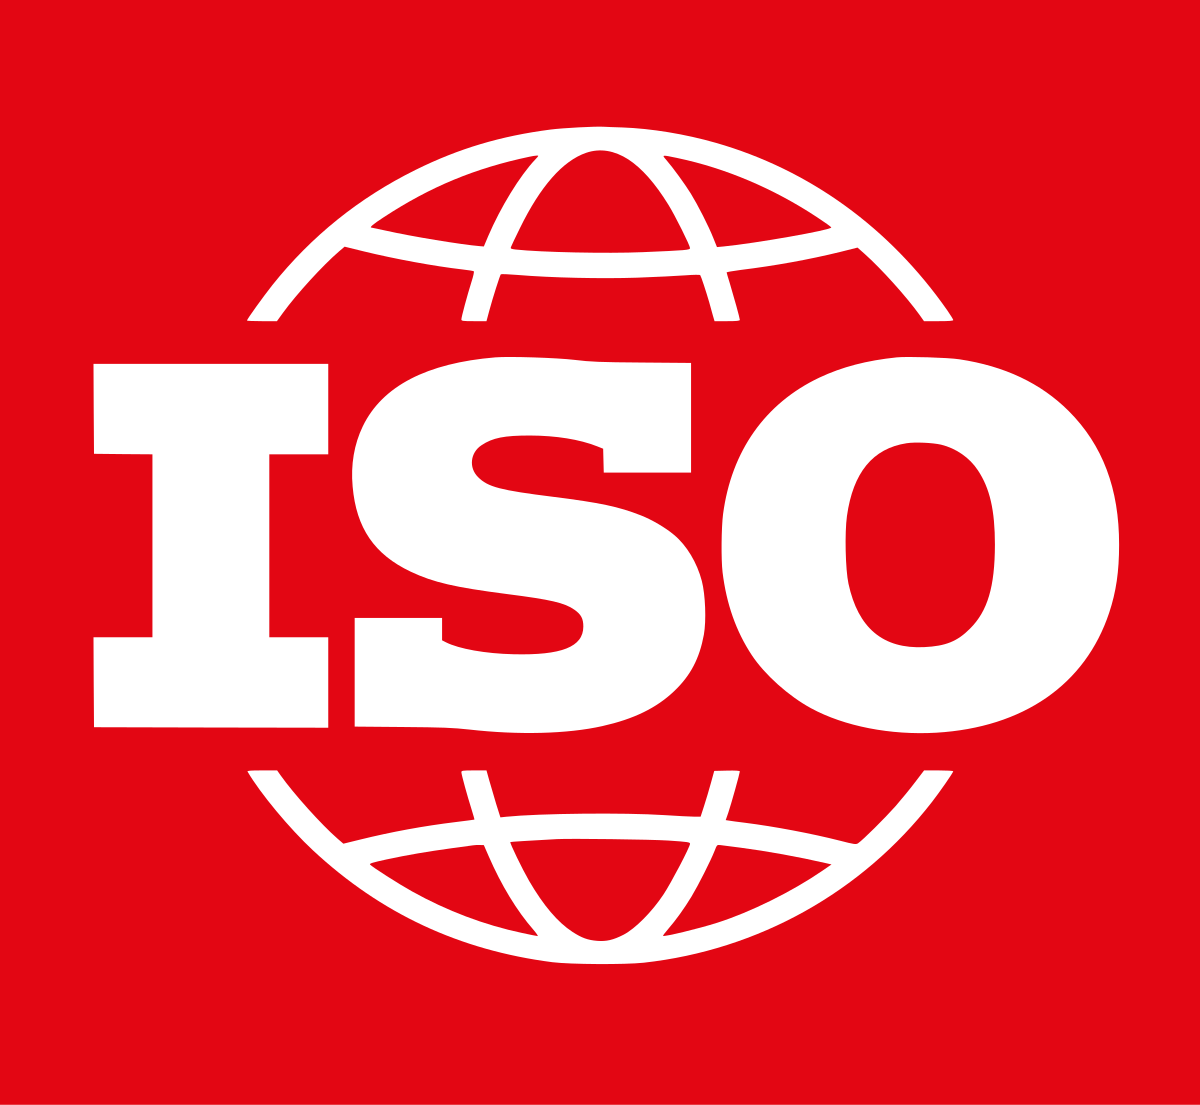 ISO releases standard for working safely during a pandemic